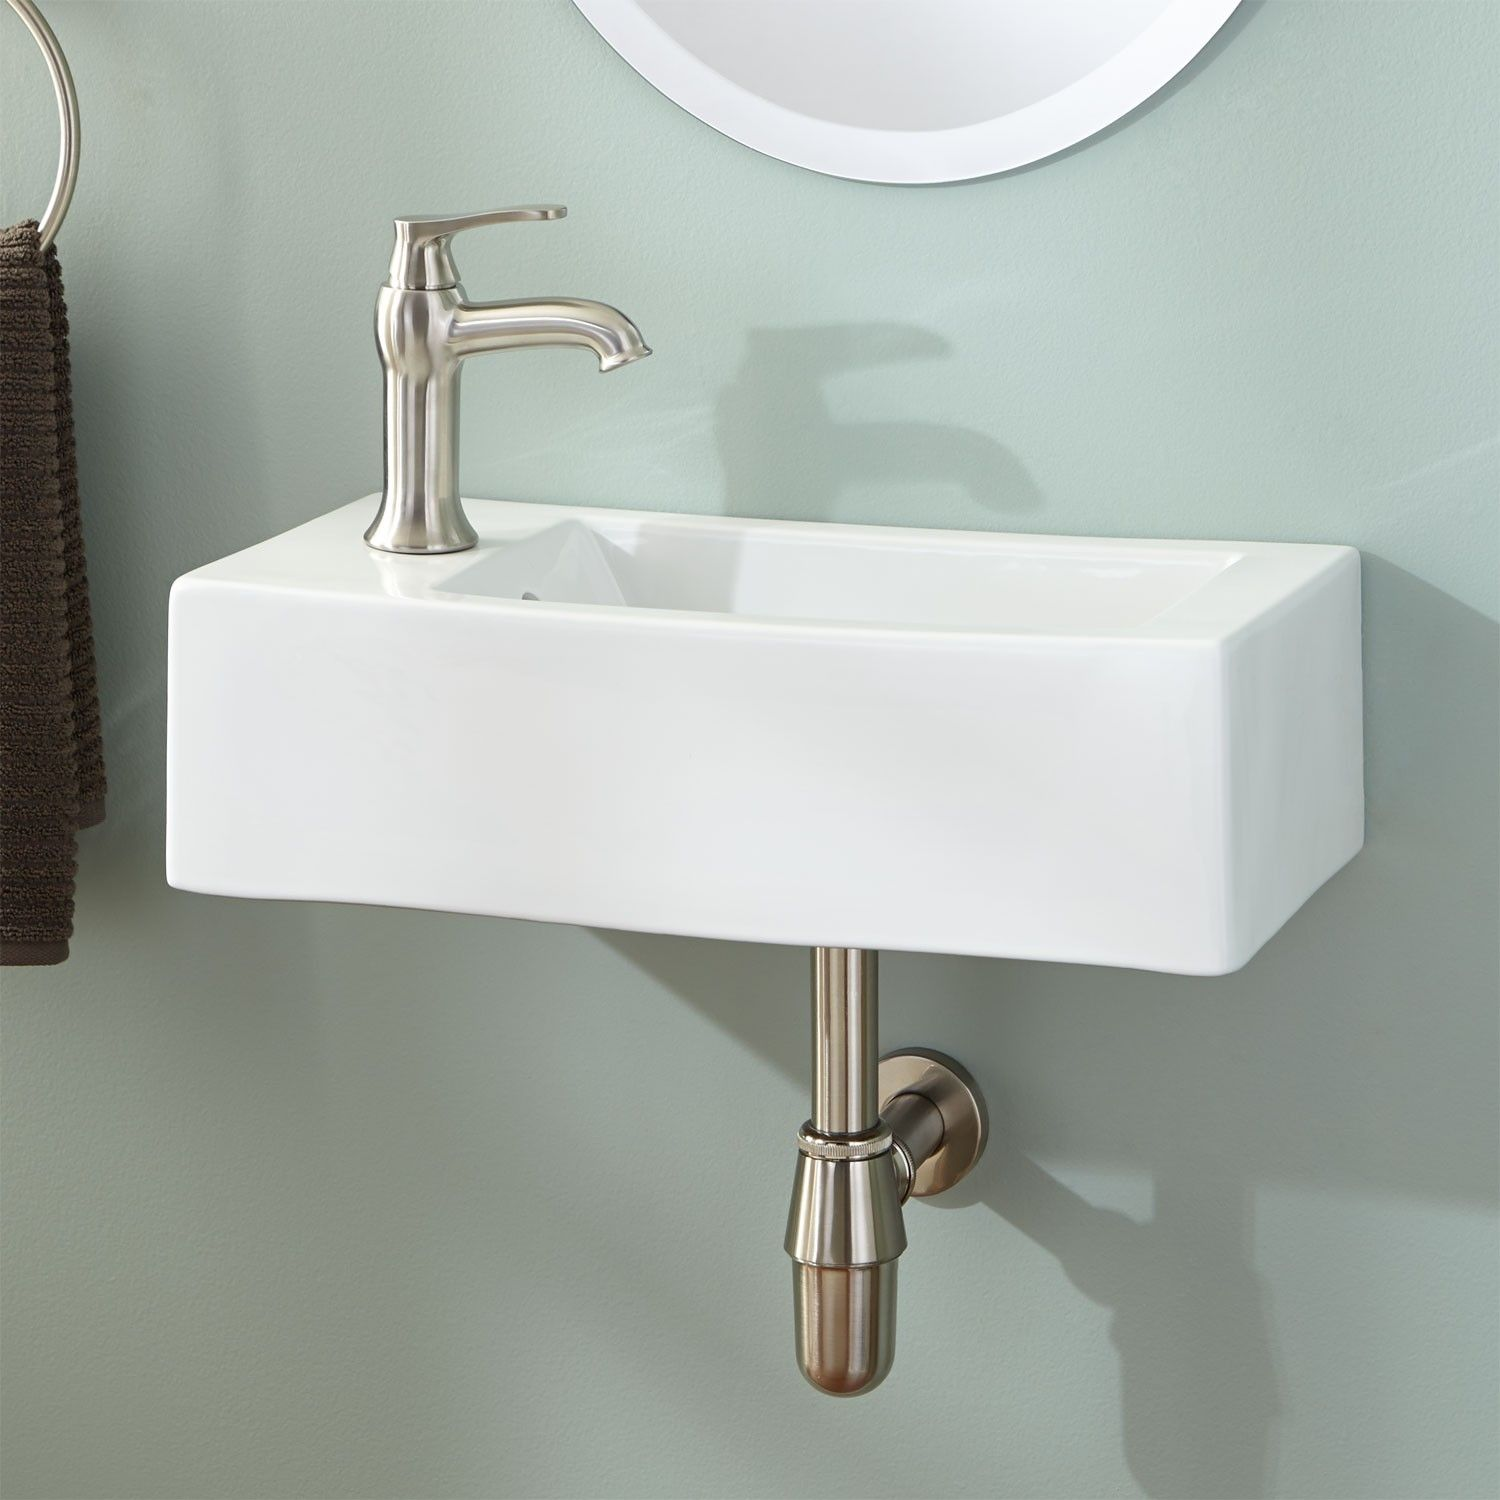 Zita Porcelain Console Sink with Brass Stand